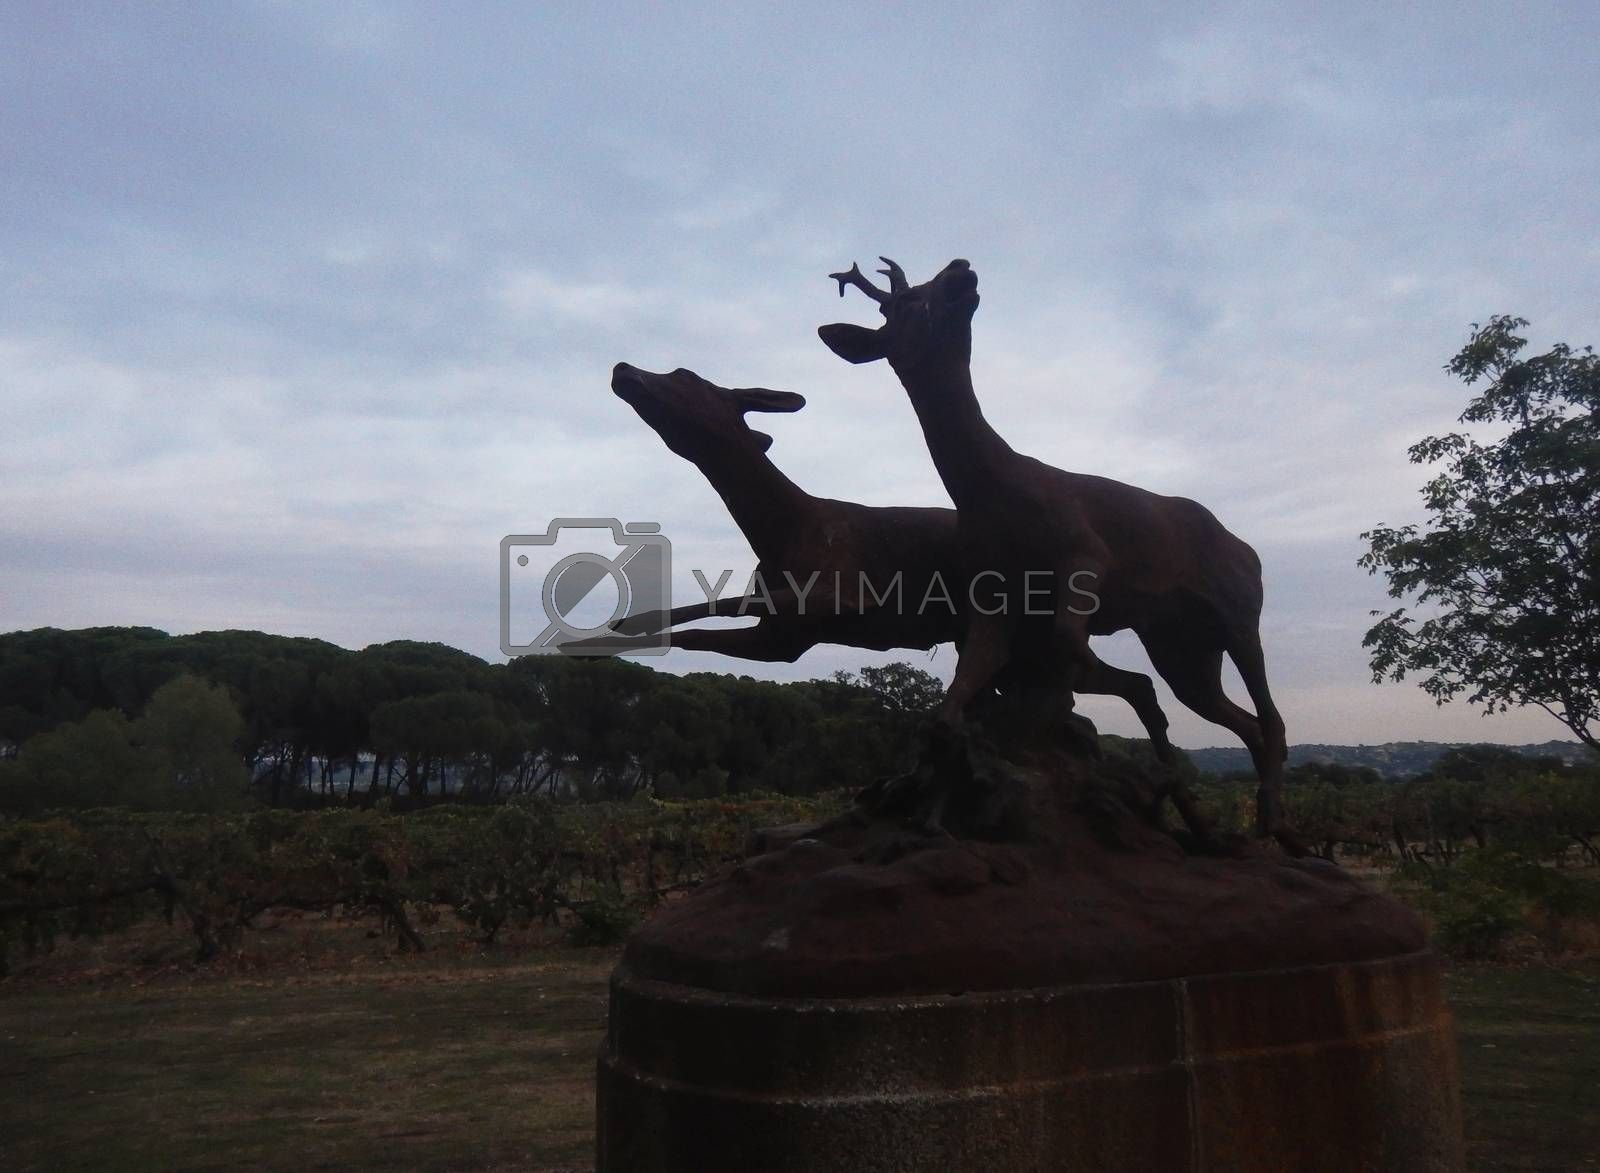 Sculpture dedicated to deer and hunting activity in nature